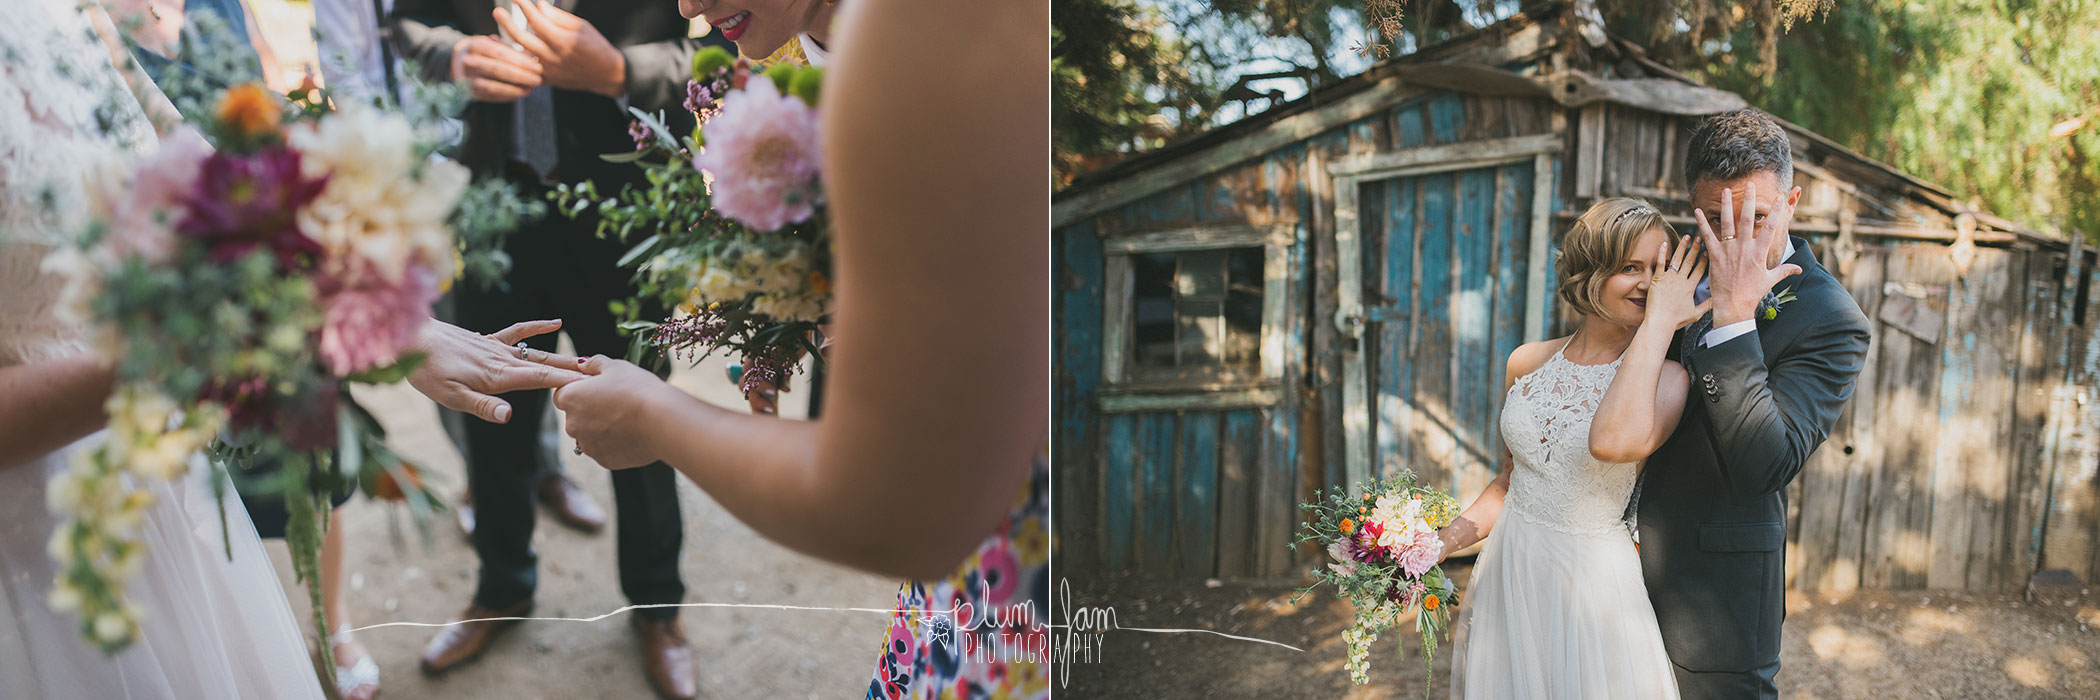 AshleyTylerWedding-Blog-018-PlumJamPhotography